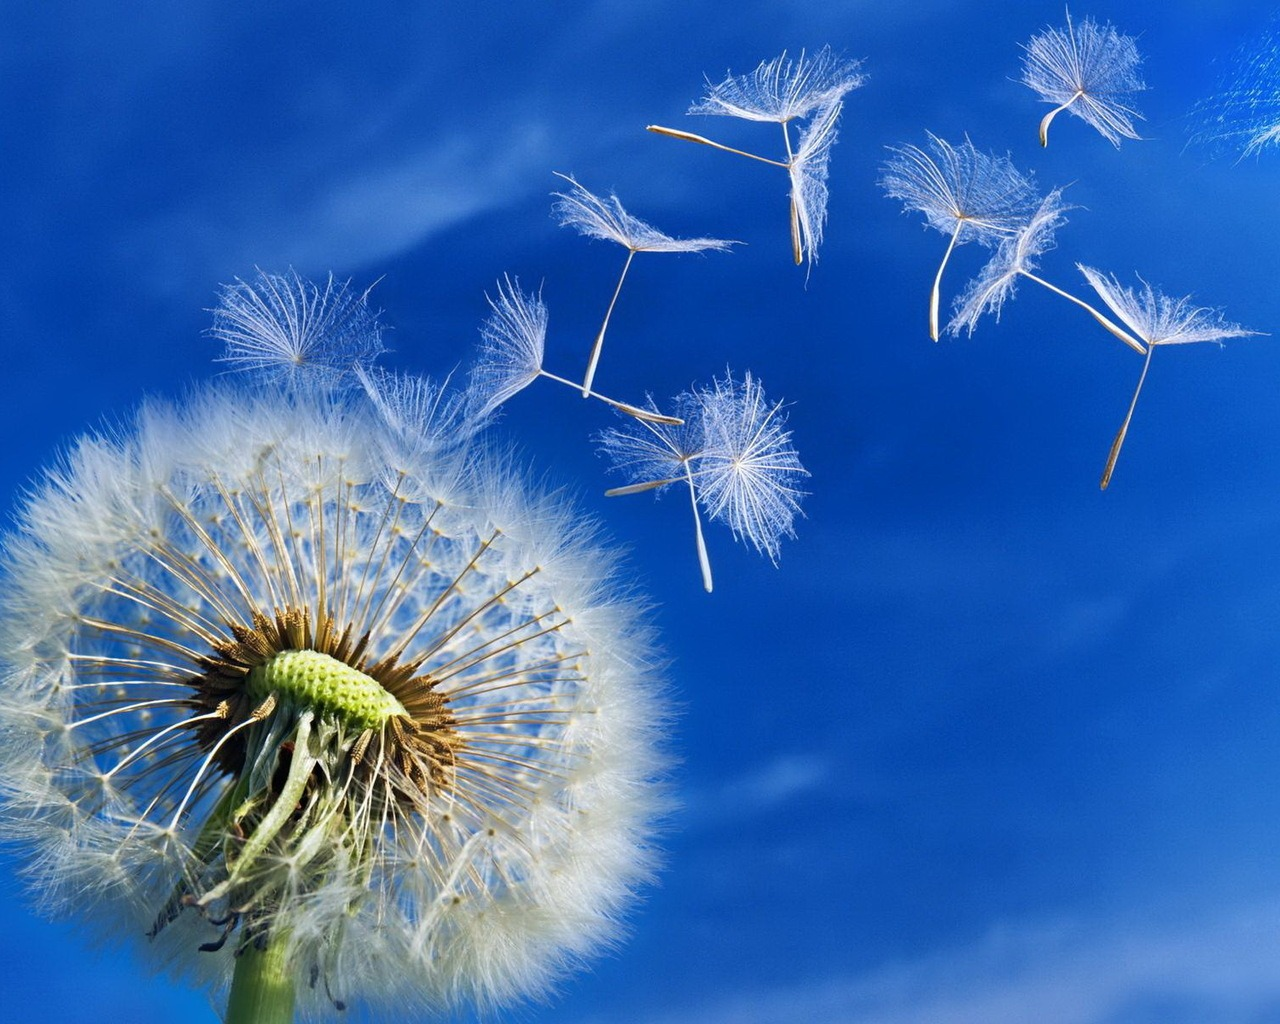 Dandelion Seeds 1280x1024 wallpaper